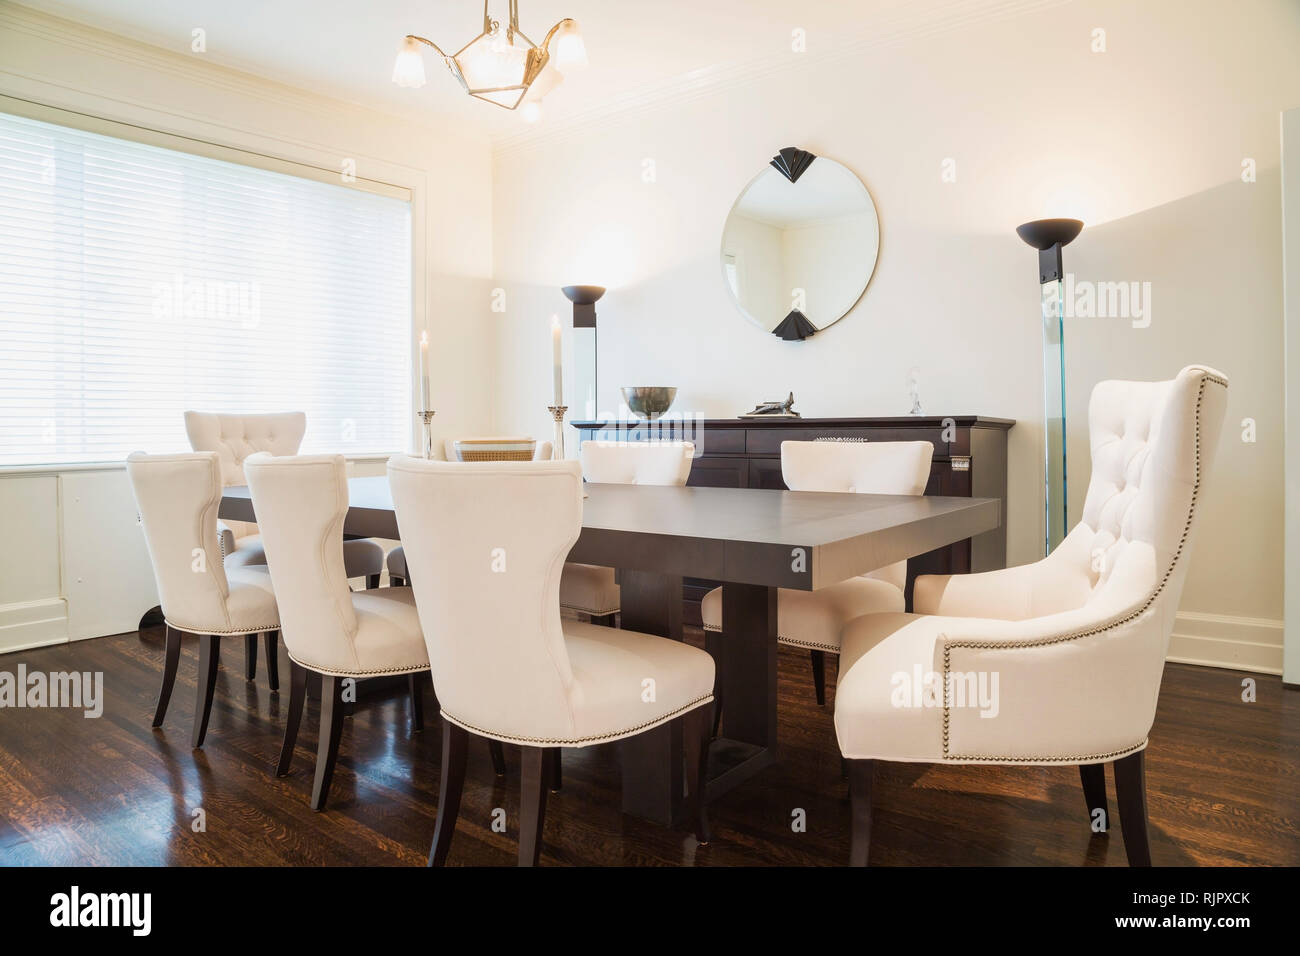 Marvelous Dark Wood Dining Table With White Cloth Upholstered Chairs Interior Design Ideas Philsoteloinfo